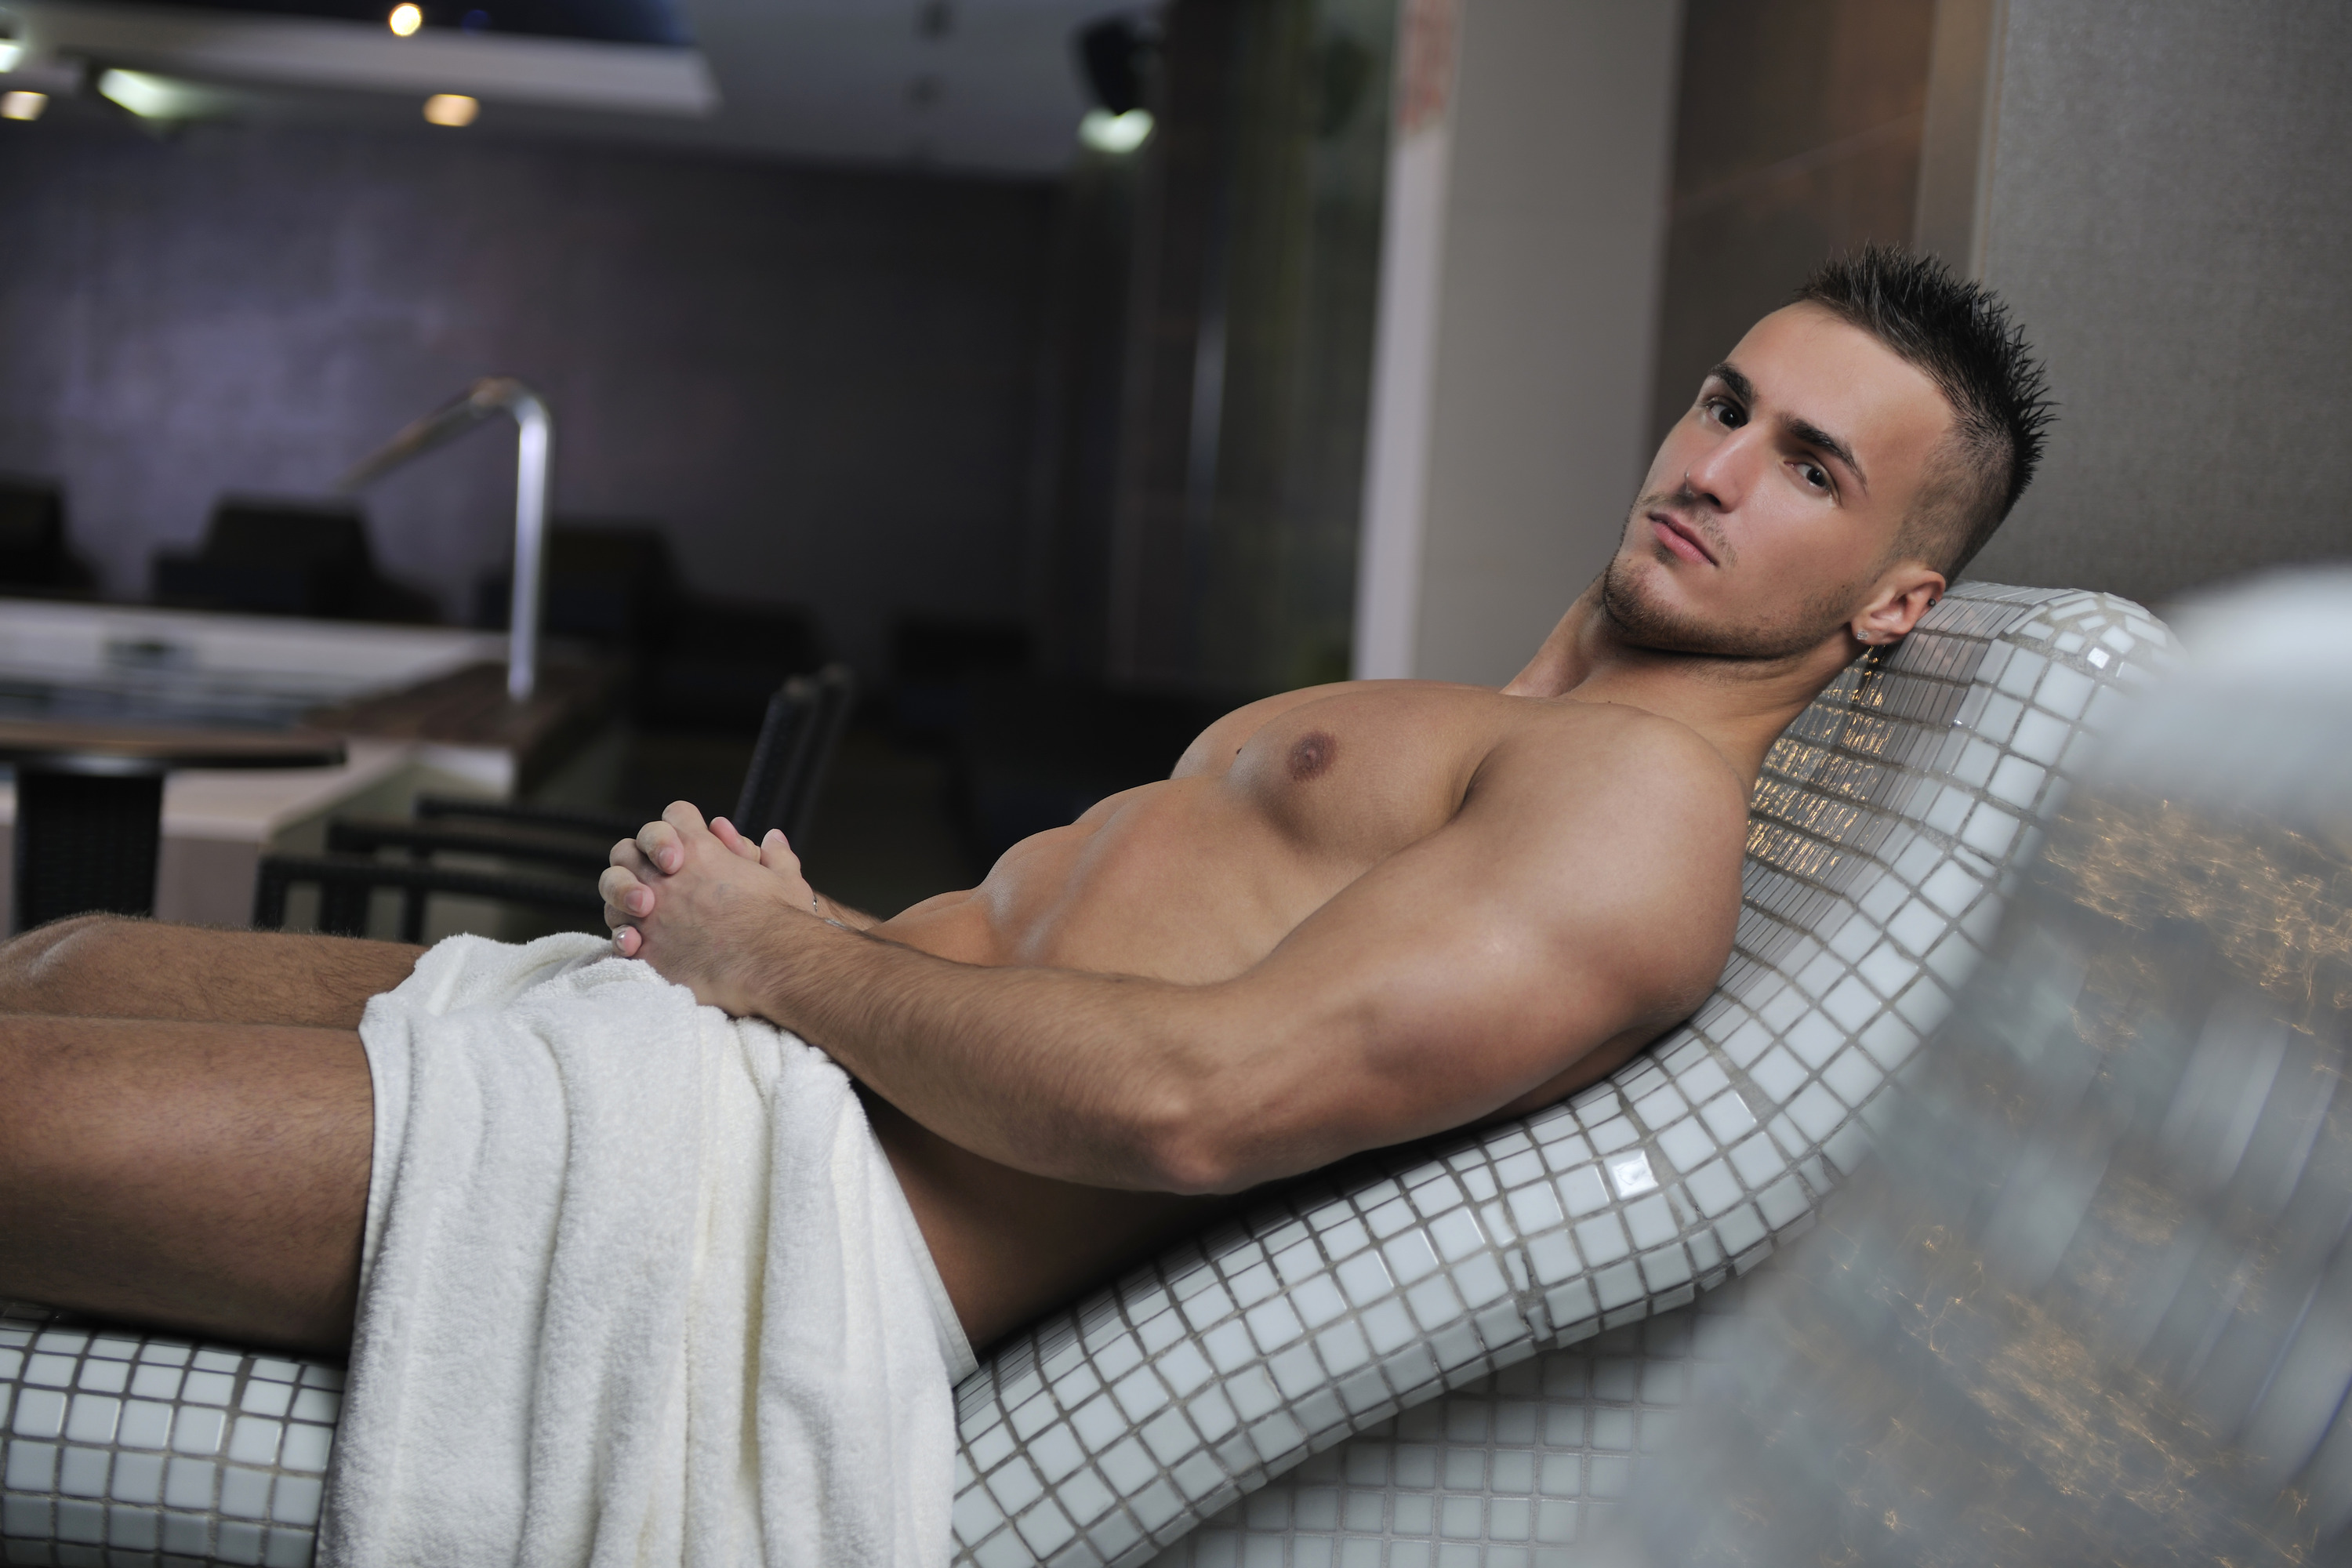 lieu de rencontre homme gay vacation packages a Cachan